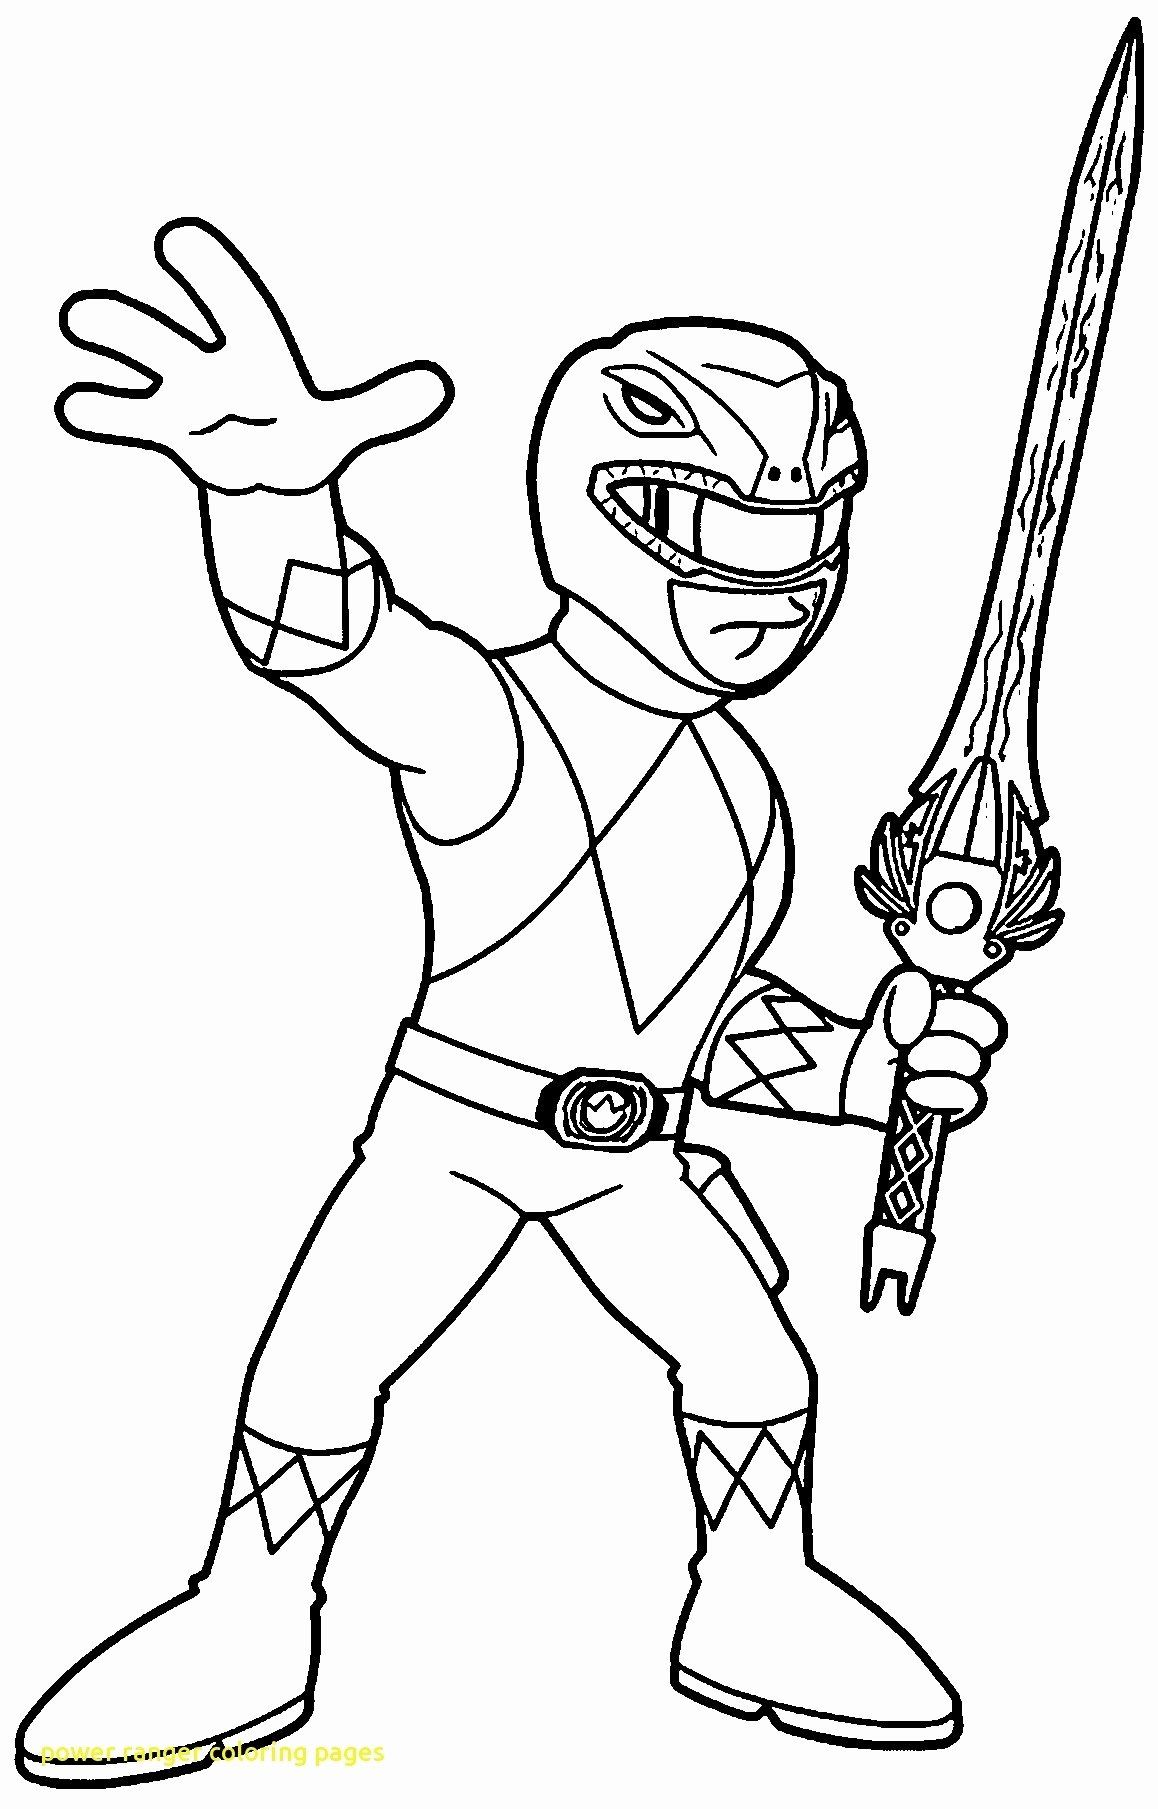 Red Power Ranger Coloring Page Inspirational Mewarnai Gambar Robot Power Rangers Power Rangers Lembar Mewarnai Gambar